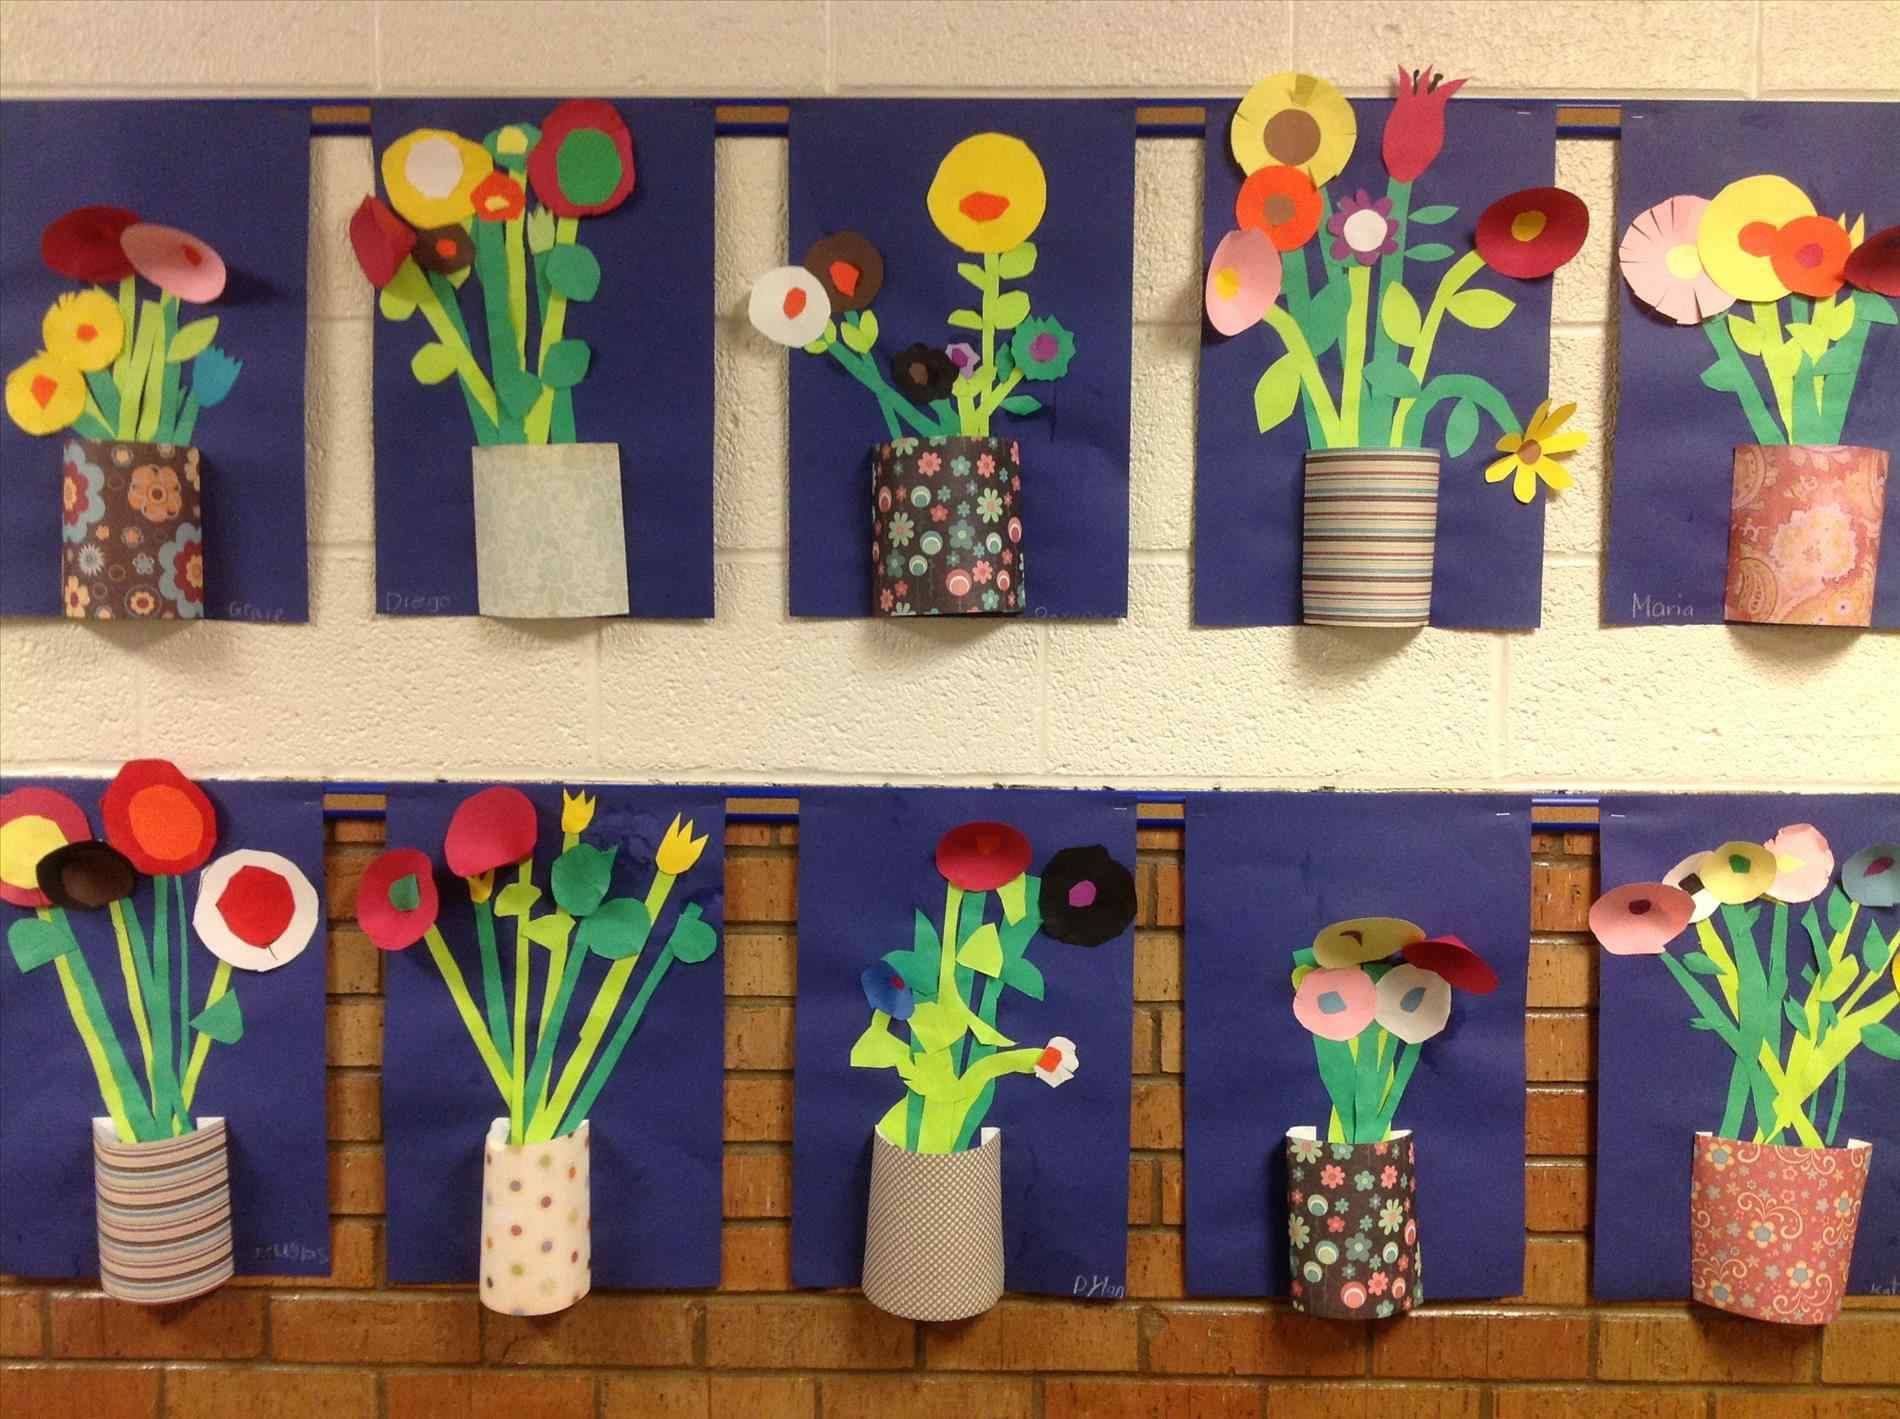 Photos And Descriptions Of Student Art Projects Being